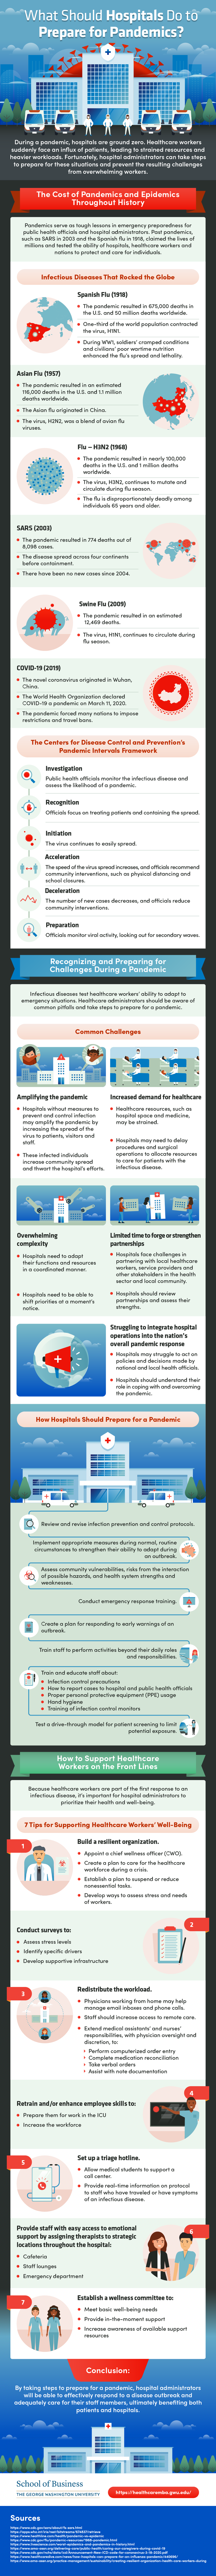 How hospital administrators can help their staff be ready to deliver effective care during a pandemic.